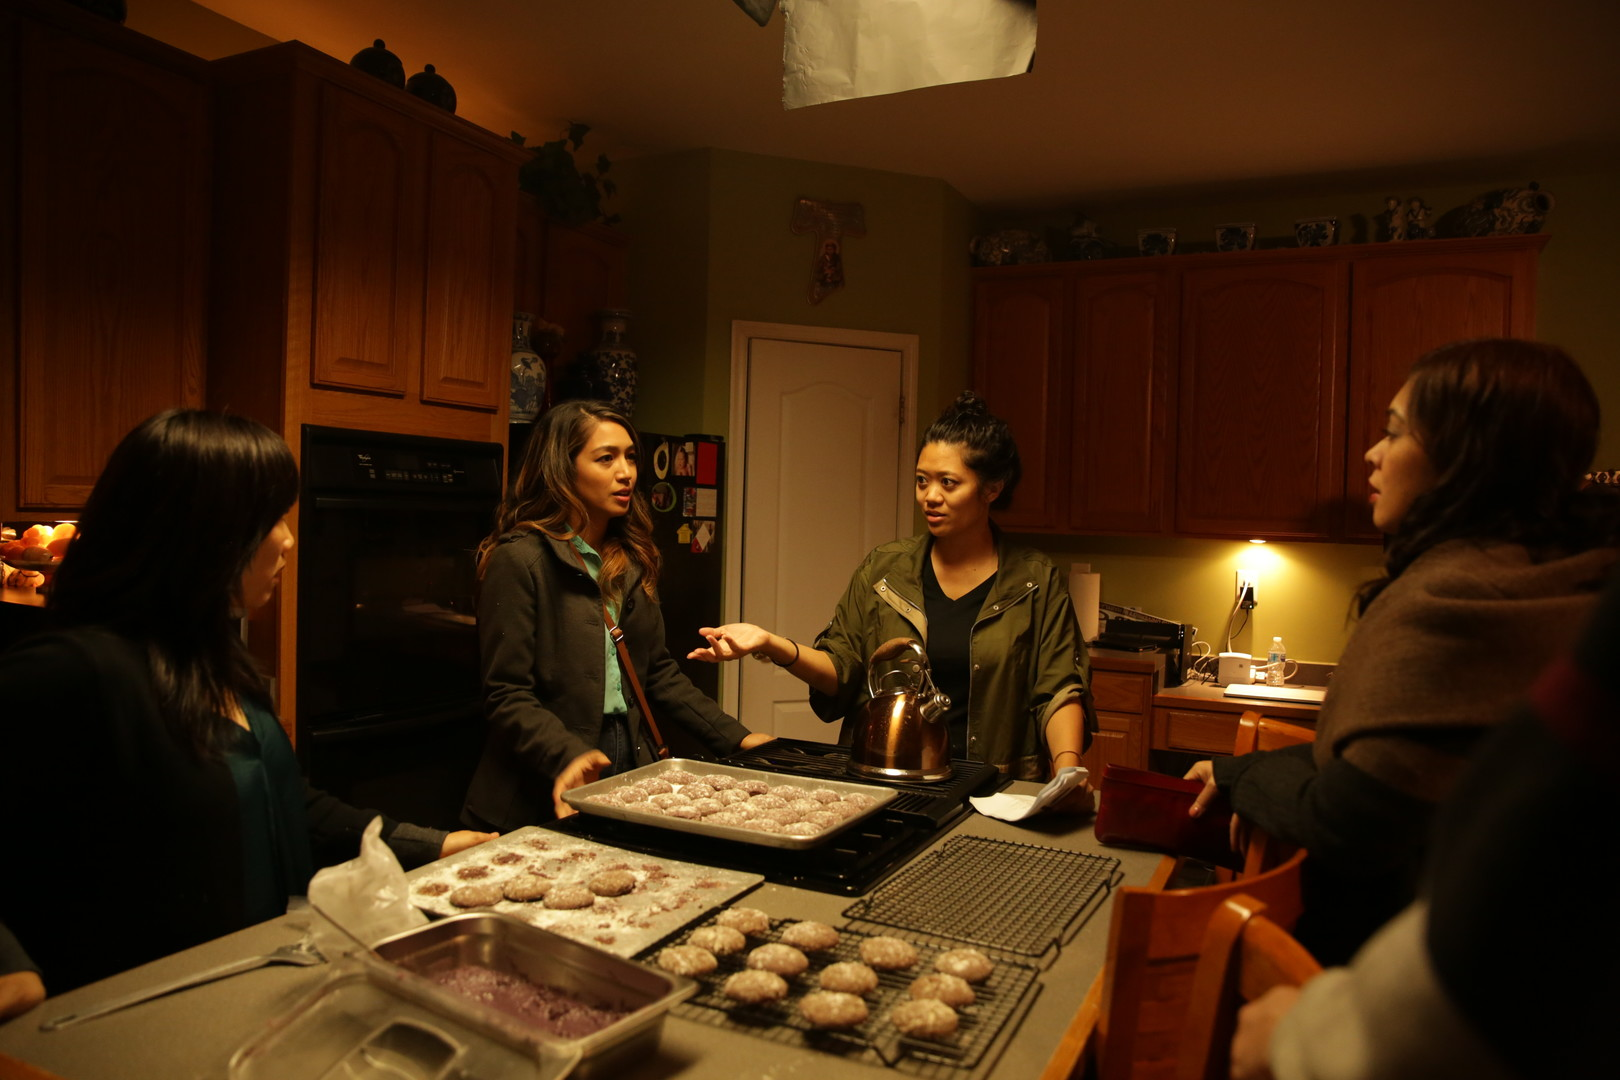 Four people standing around talking in a kitchen